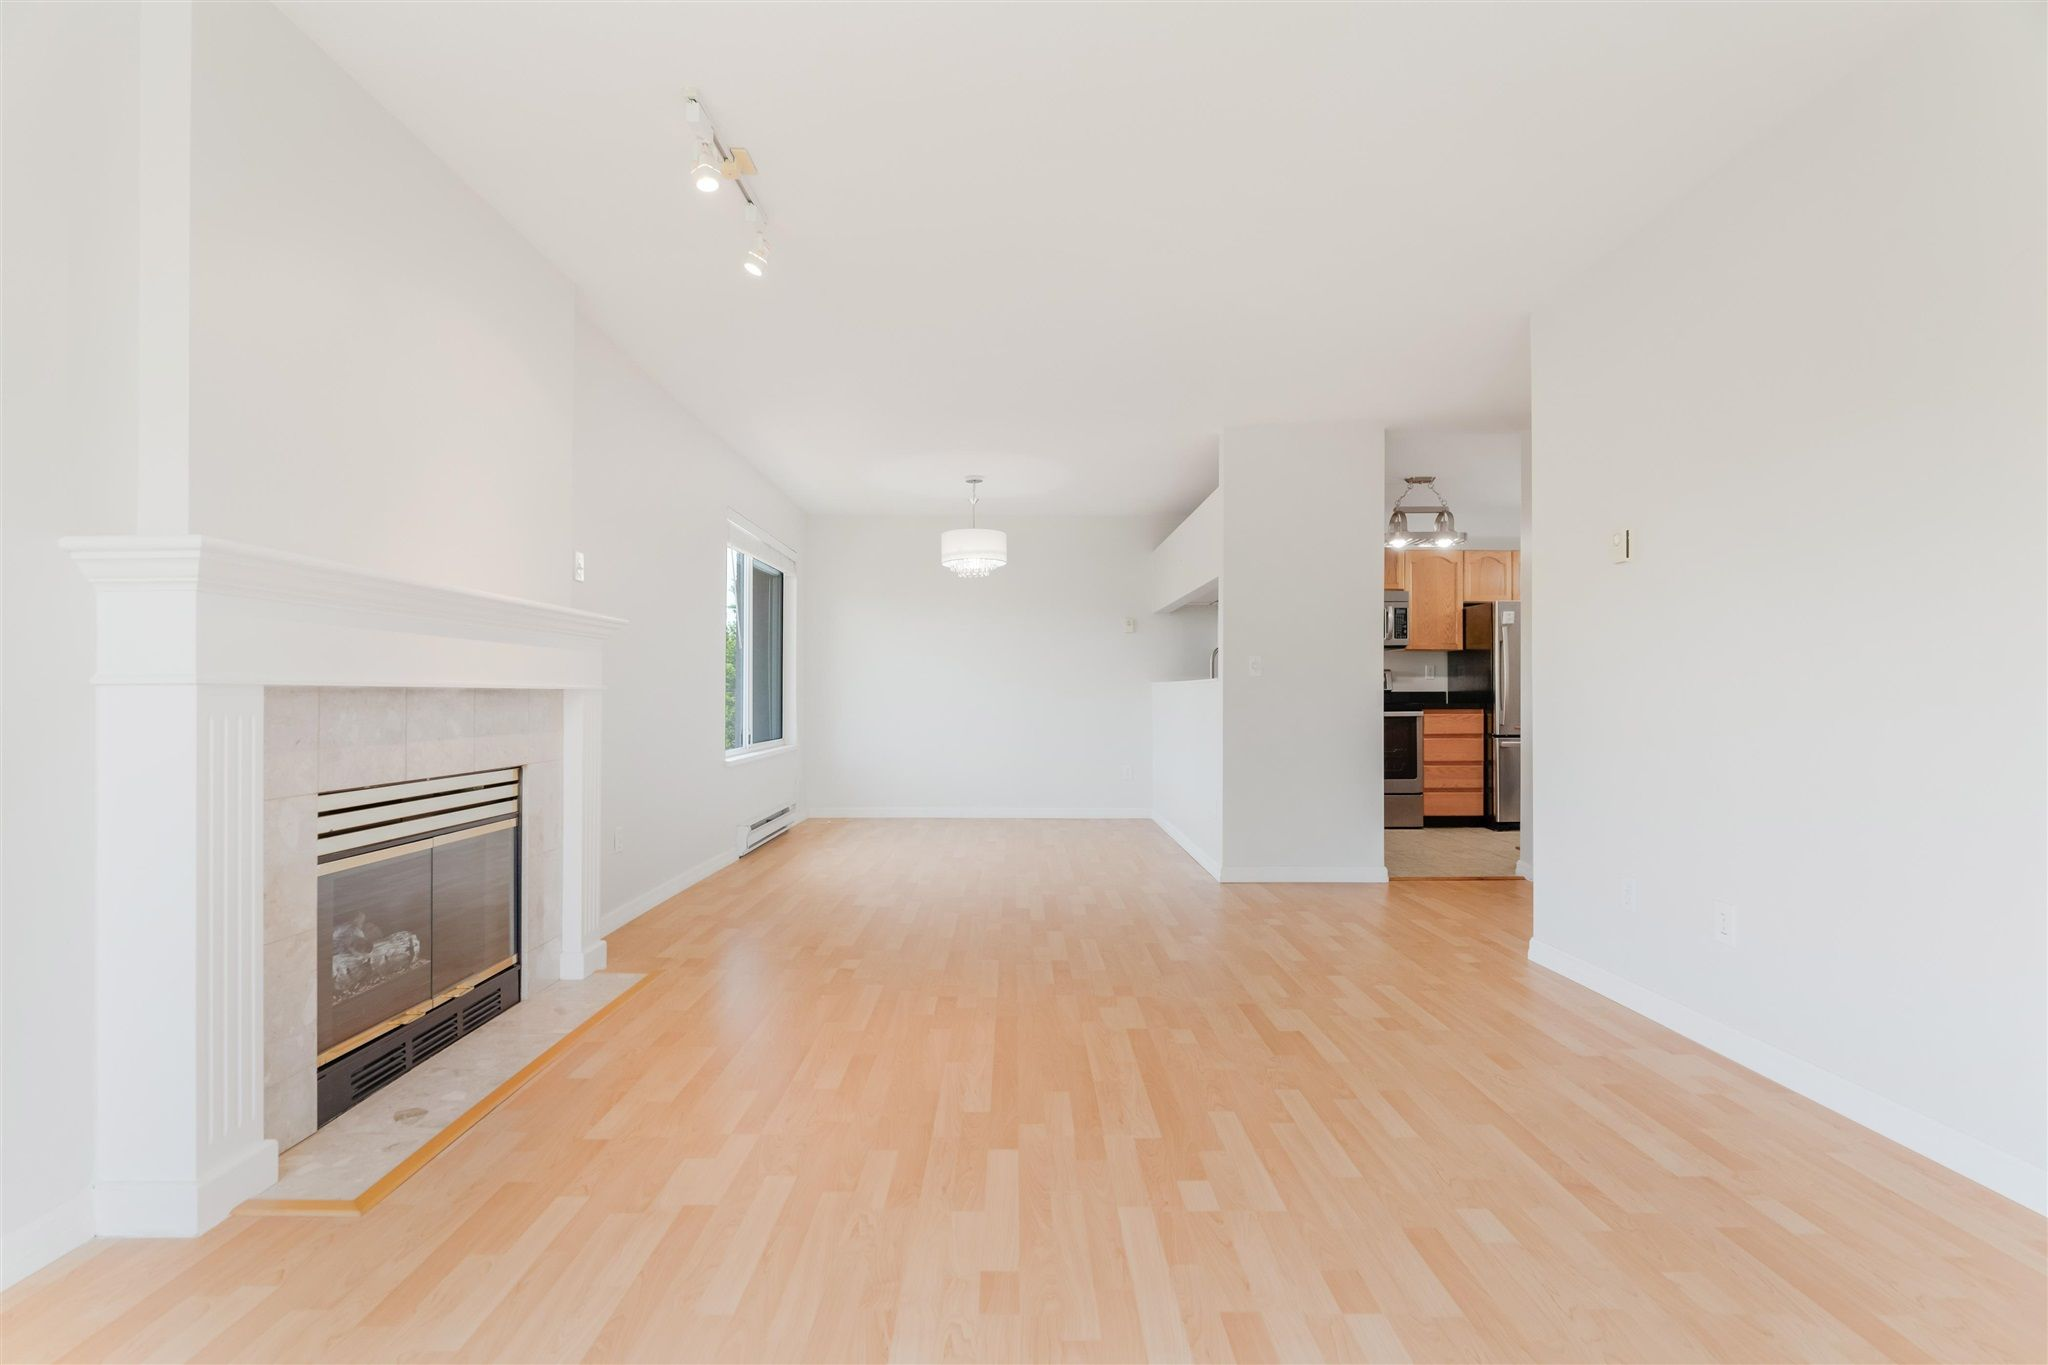 Photo 4: Photos: 303 1171 PIPELINE Road in Coquitlam: New Horizons Condo for sale : MLS®# R2607932